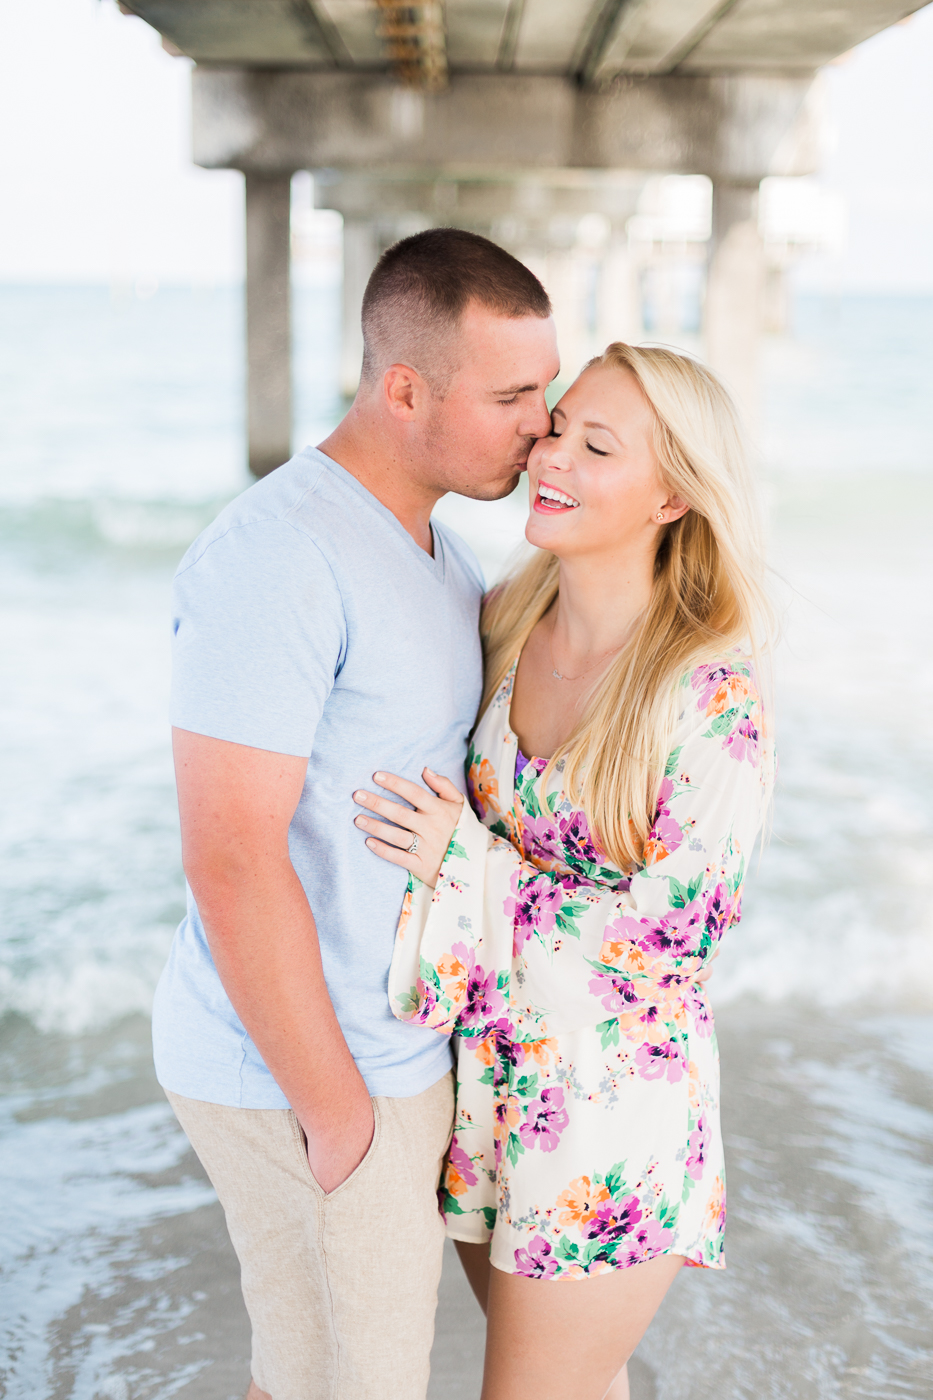 Ally + Austin - clearwater beach, Florida